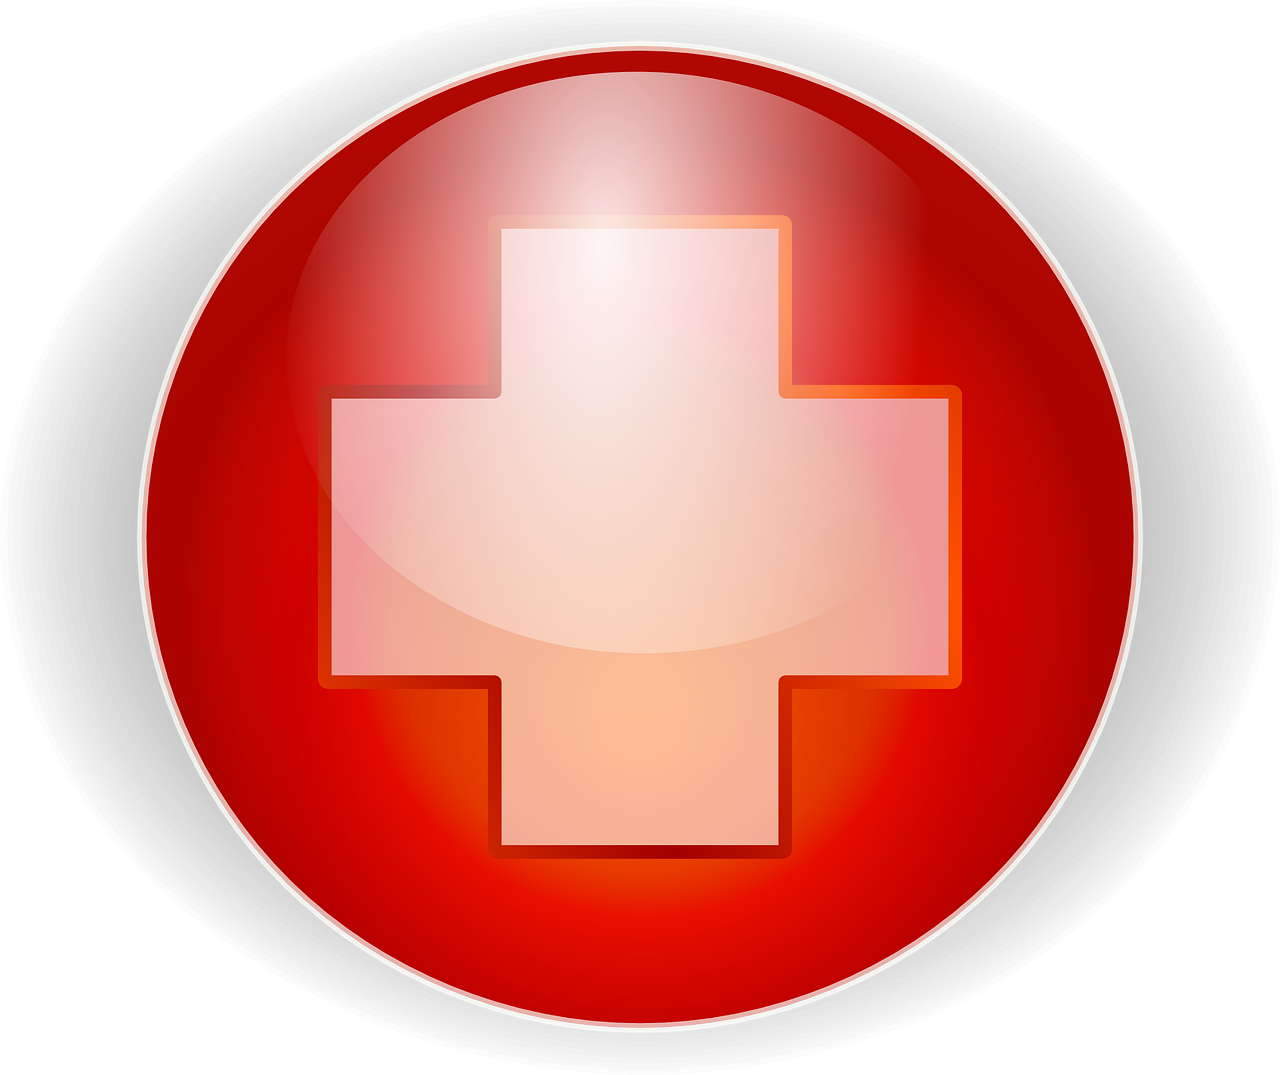 red cross,humanitarian aid,emergency healthcare,red cross logo,red cross symbol,red cross button,free vector graphics,free pictures, free photos, free images, royalty free, free illustrations, public domain